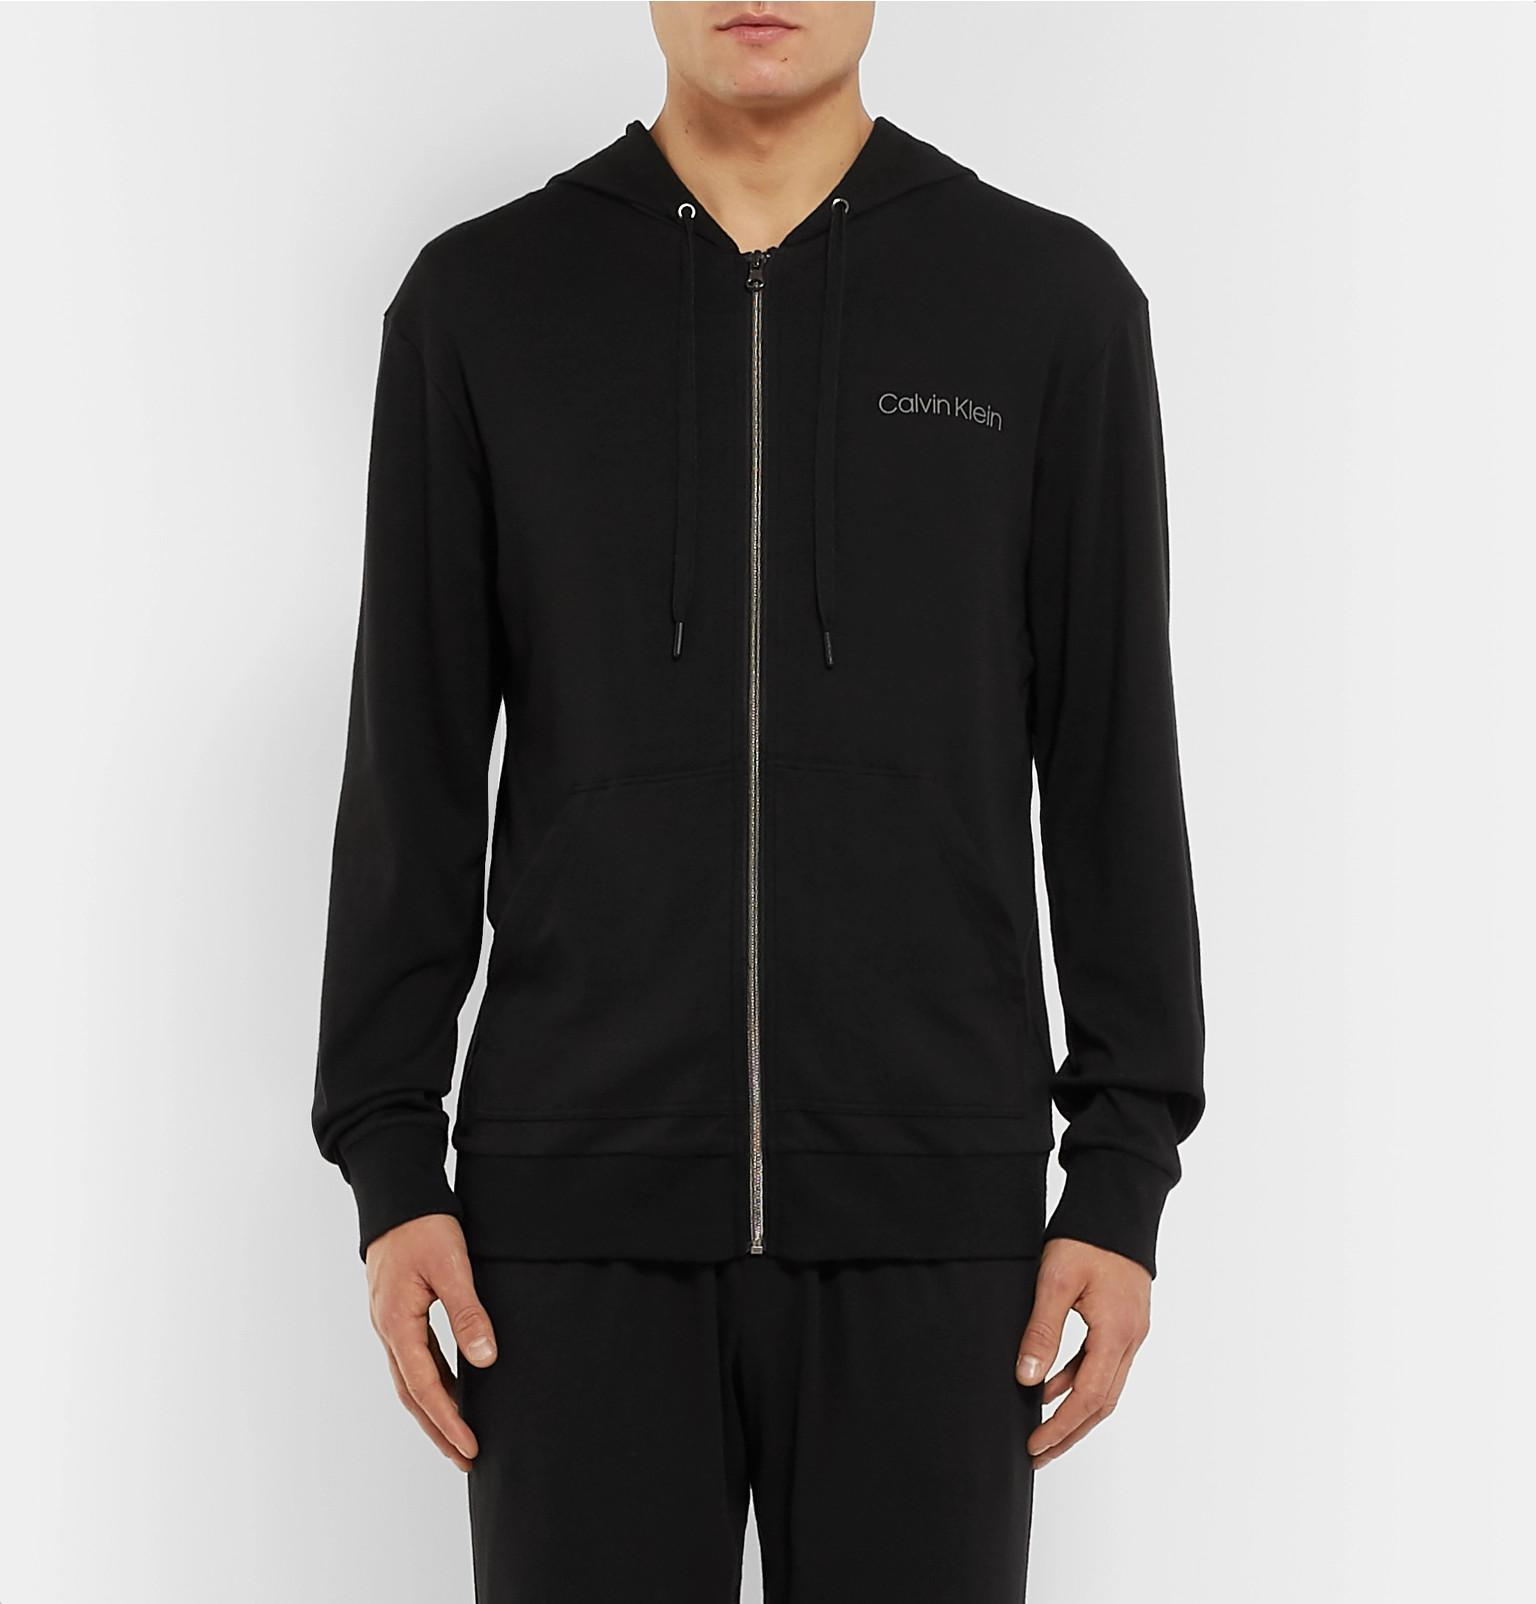 0340be1dc507 Calvin Klein - Black Stretch Cotton And Modal-blend Zip-up Hoodie for Men.  View fullscreen